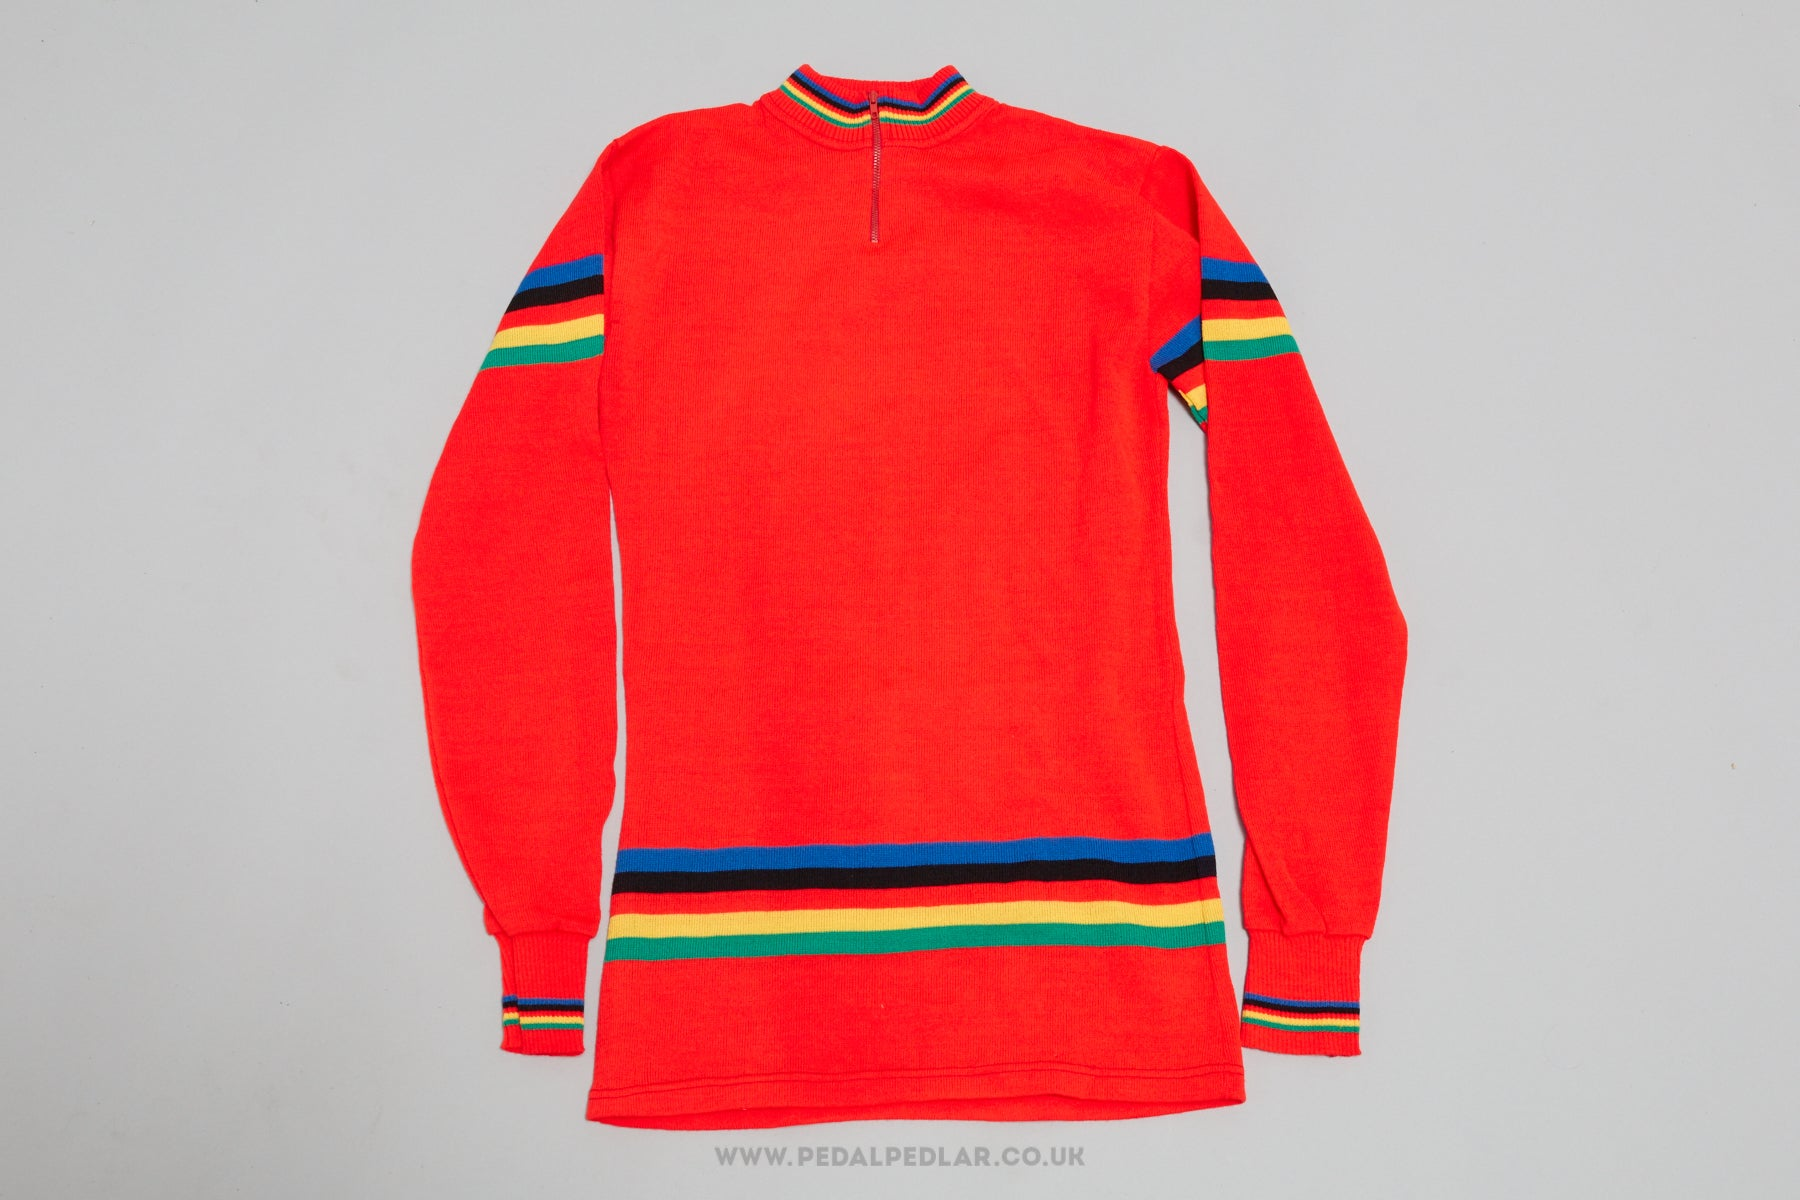 3a4a4df05 Red Vintage Woollen Woollen Style Long-Sleeved Cycling Jersey